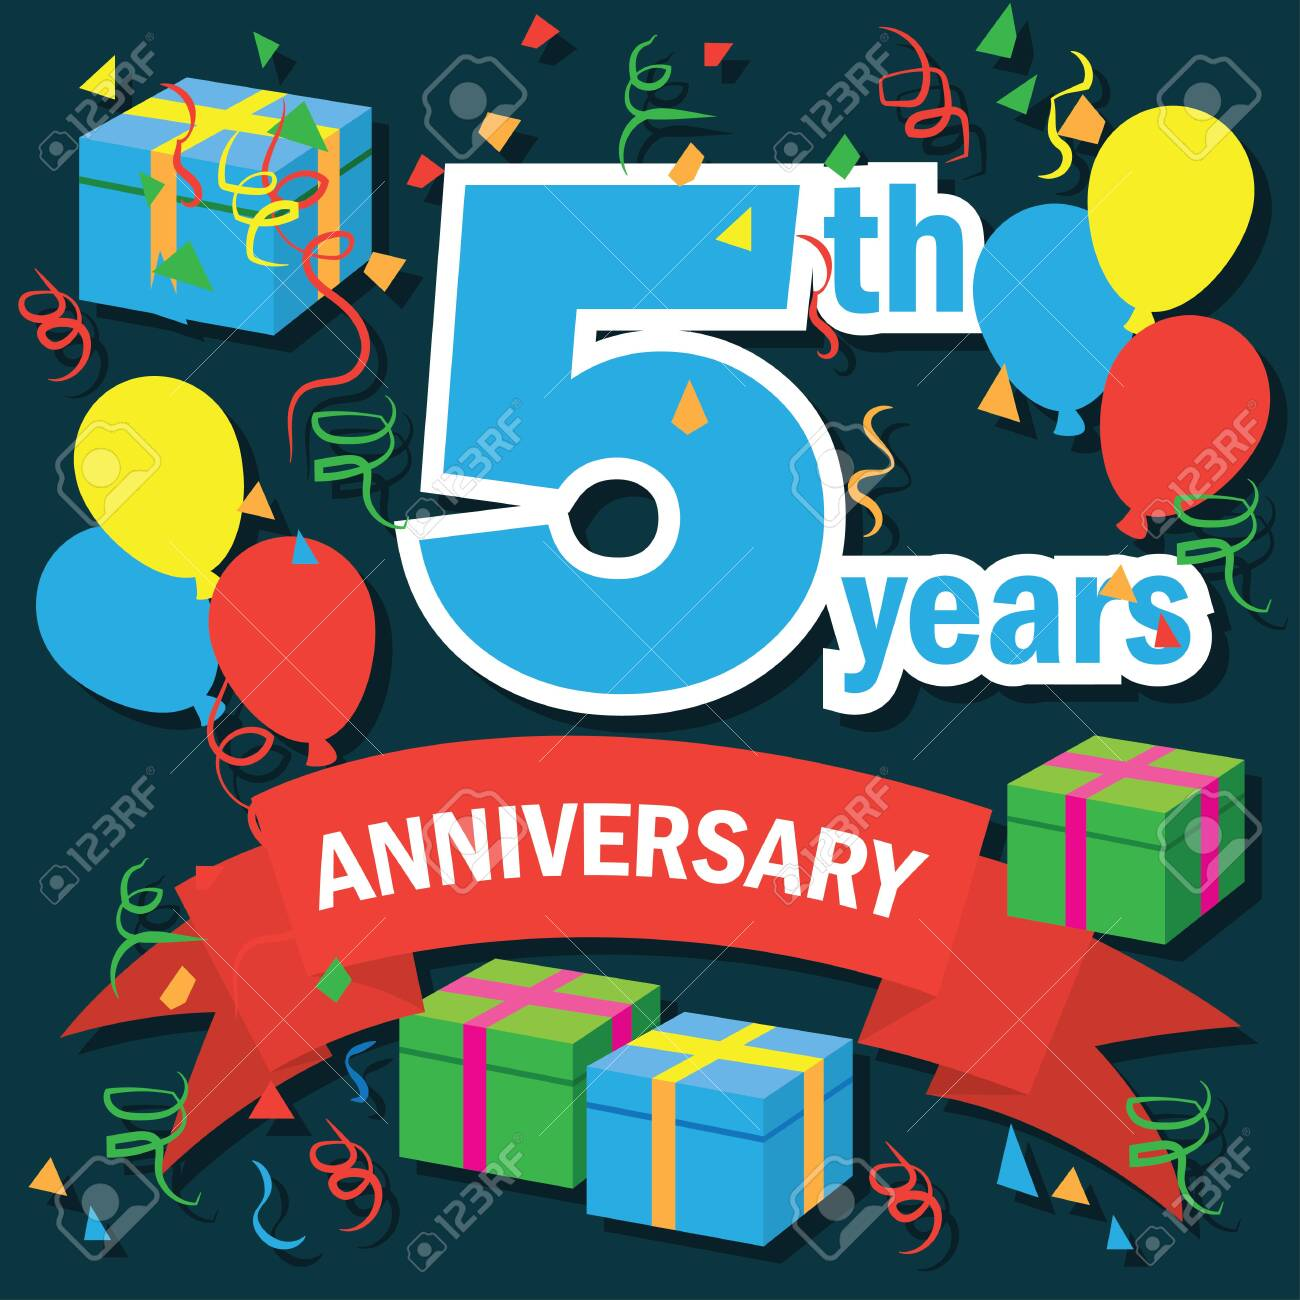 Anniversary clipart 5th, Anniversary 5th Transparent FREE for download on  WebStockReview 2020